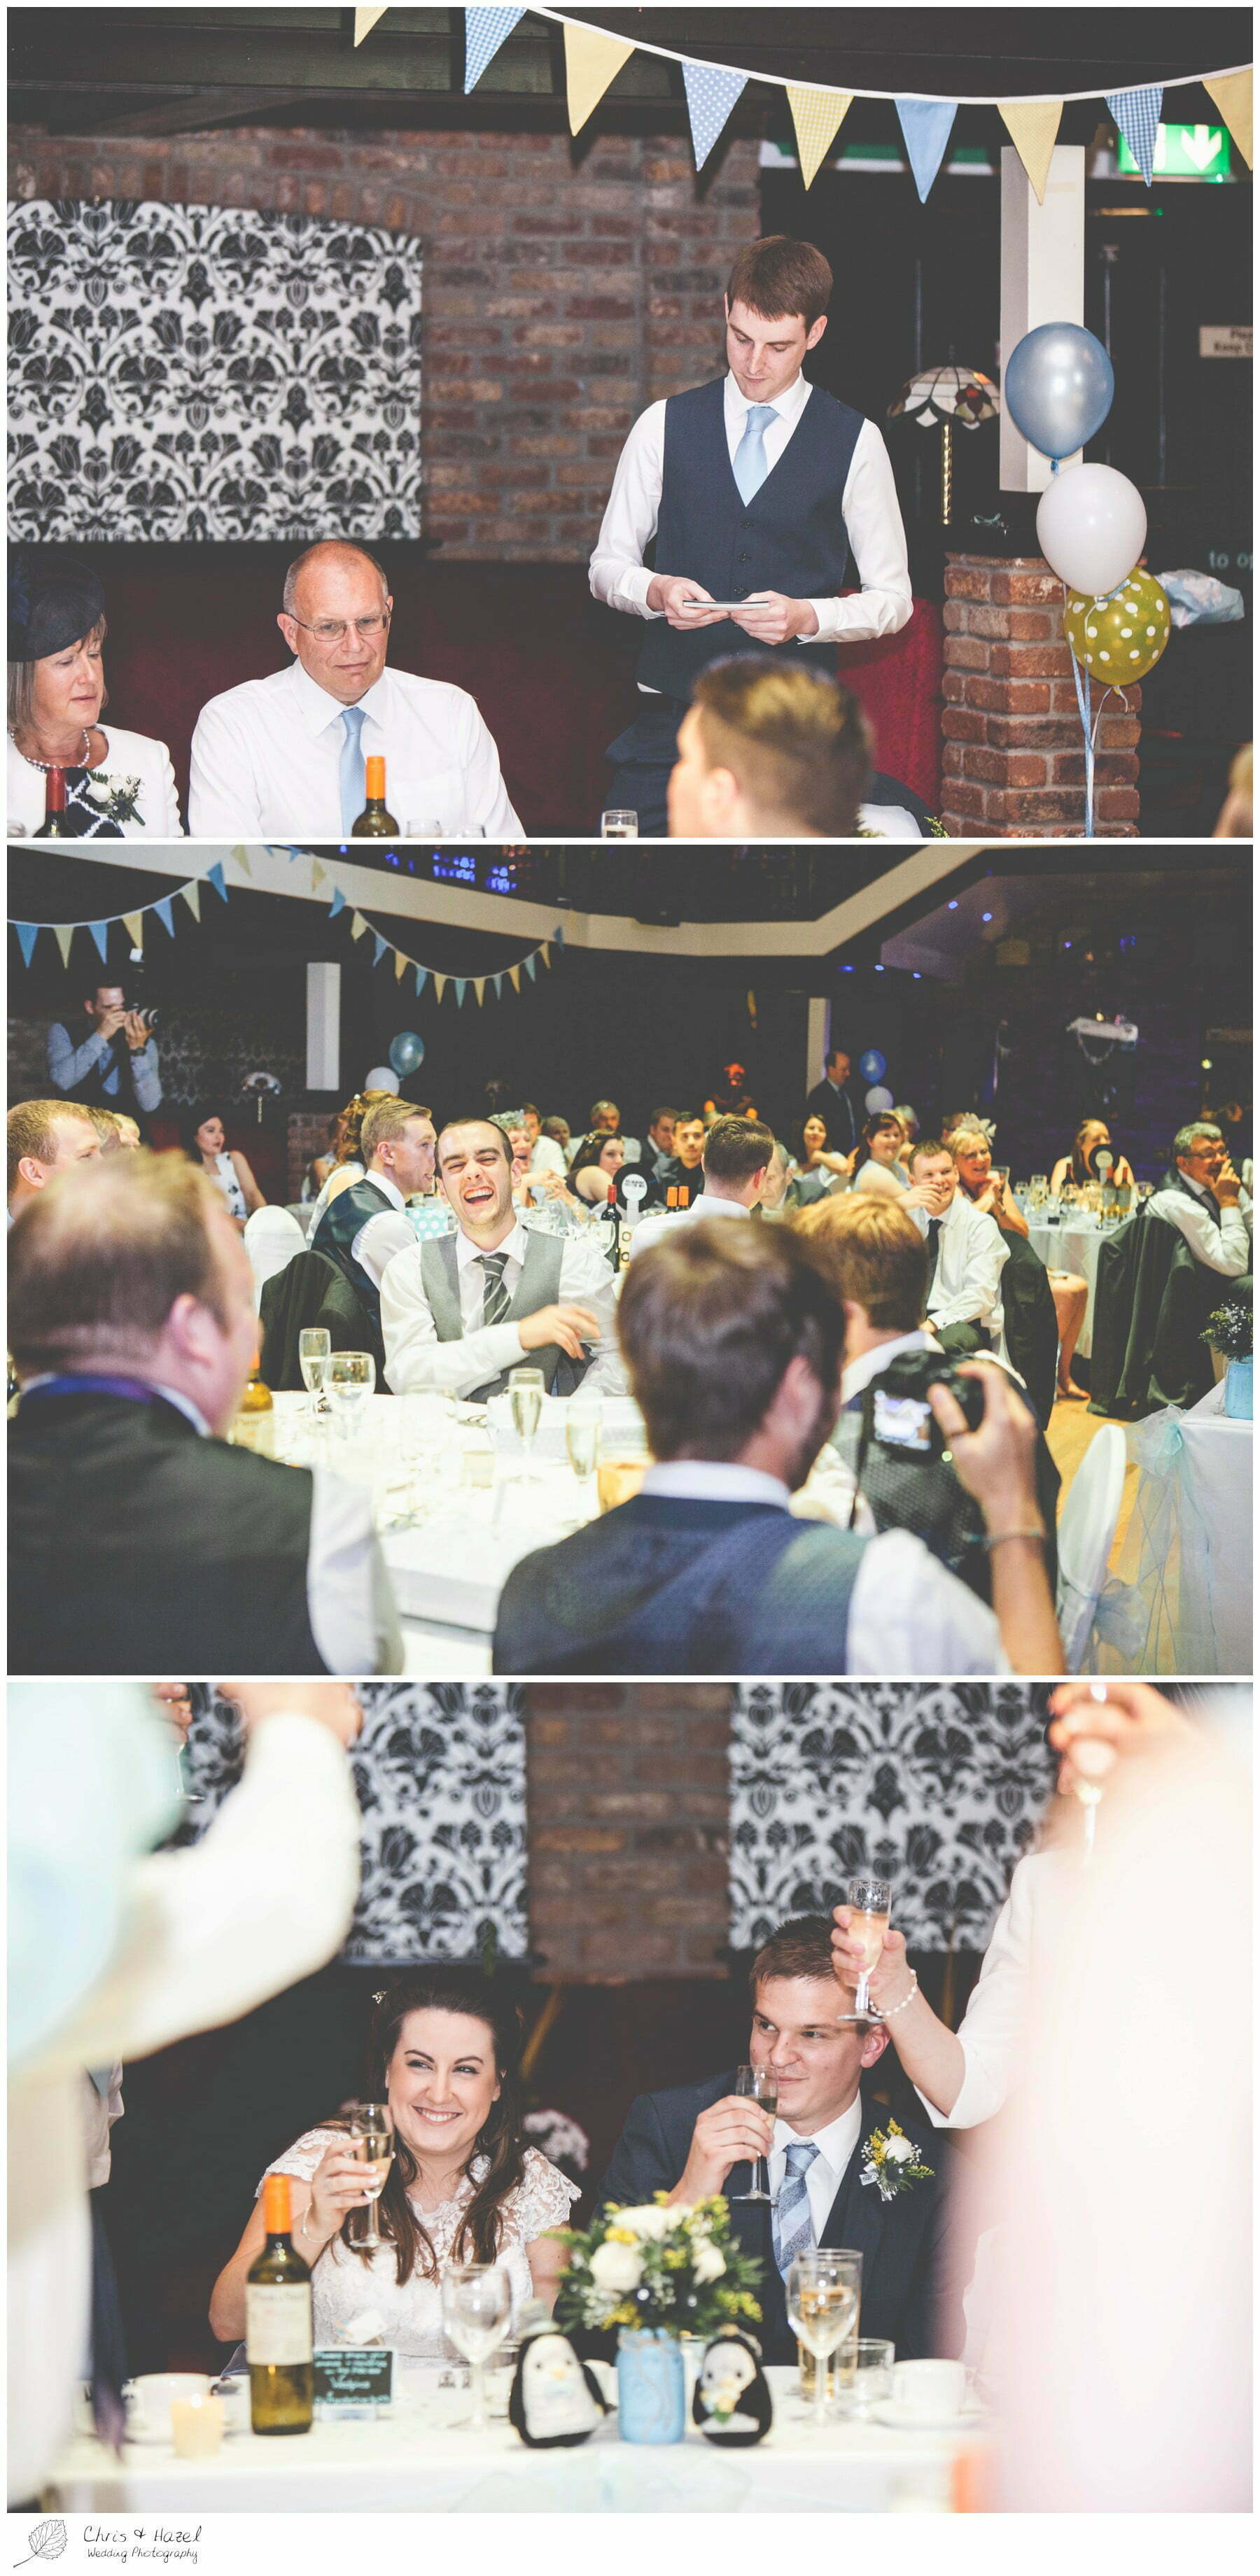 best man bestman wedding speech, wedding, south milford Wedding Photographer, the engine shed, wetherby wedding venue, Wedding Photography wetherby, Chris and Hazel Wedding Photography, stevie pollard, stevie standerline, paul standerline,